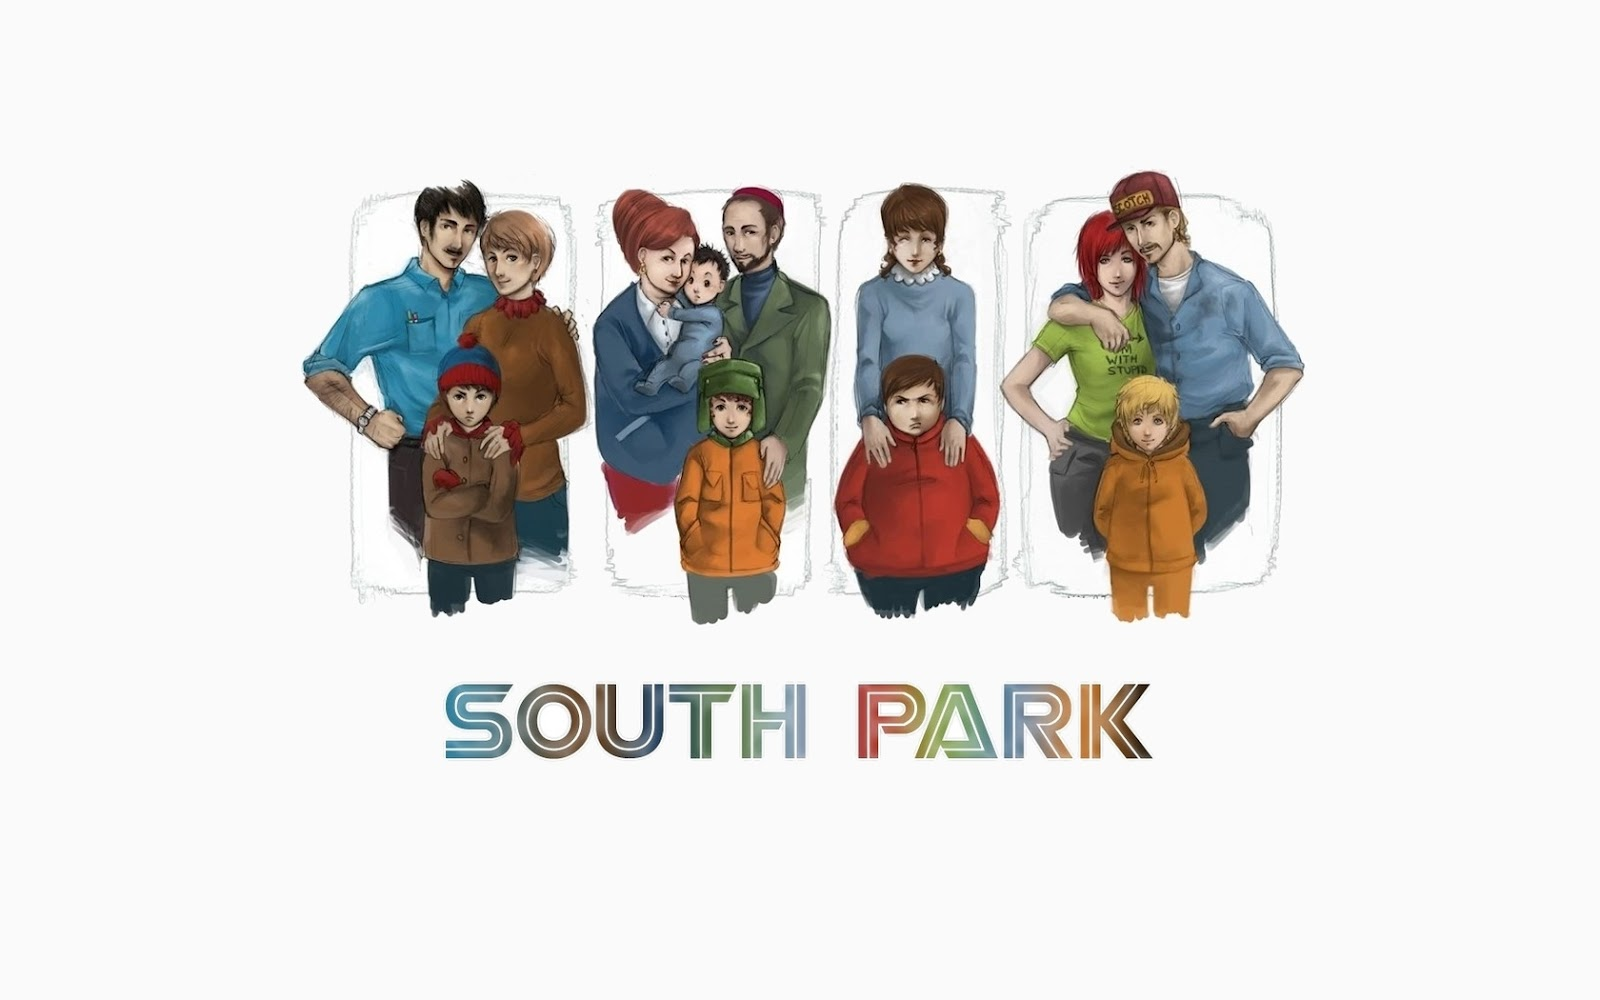 Funny South Park Characters